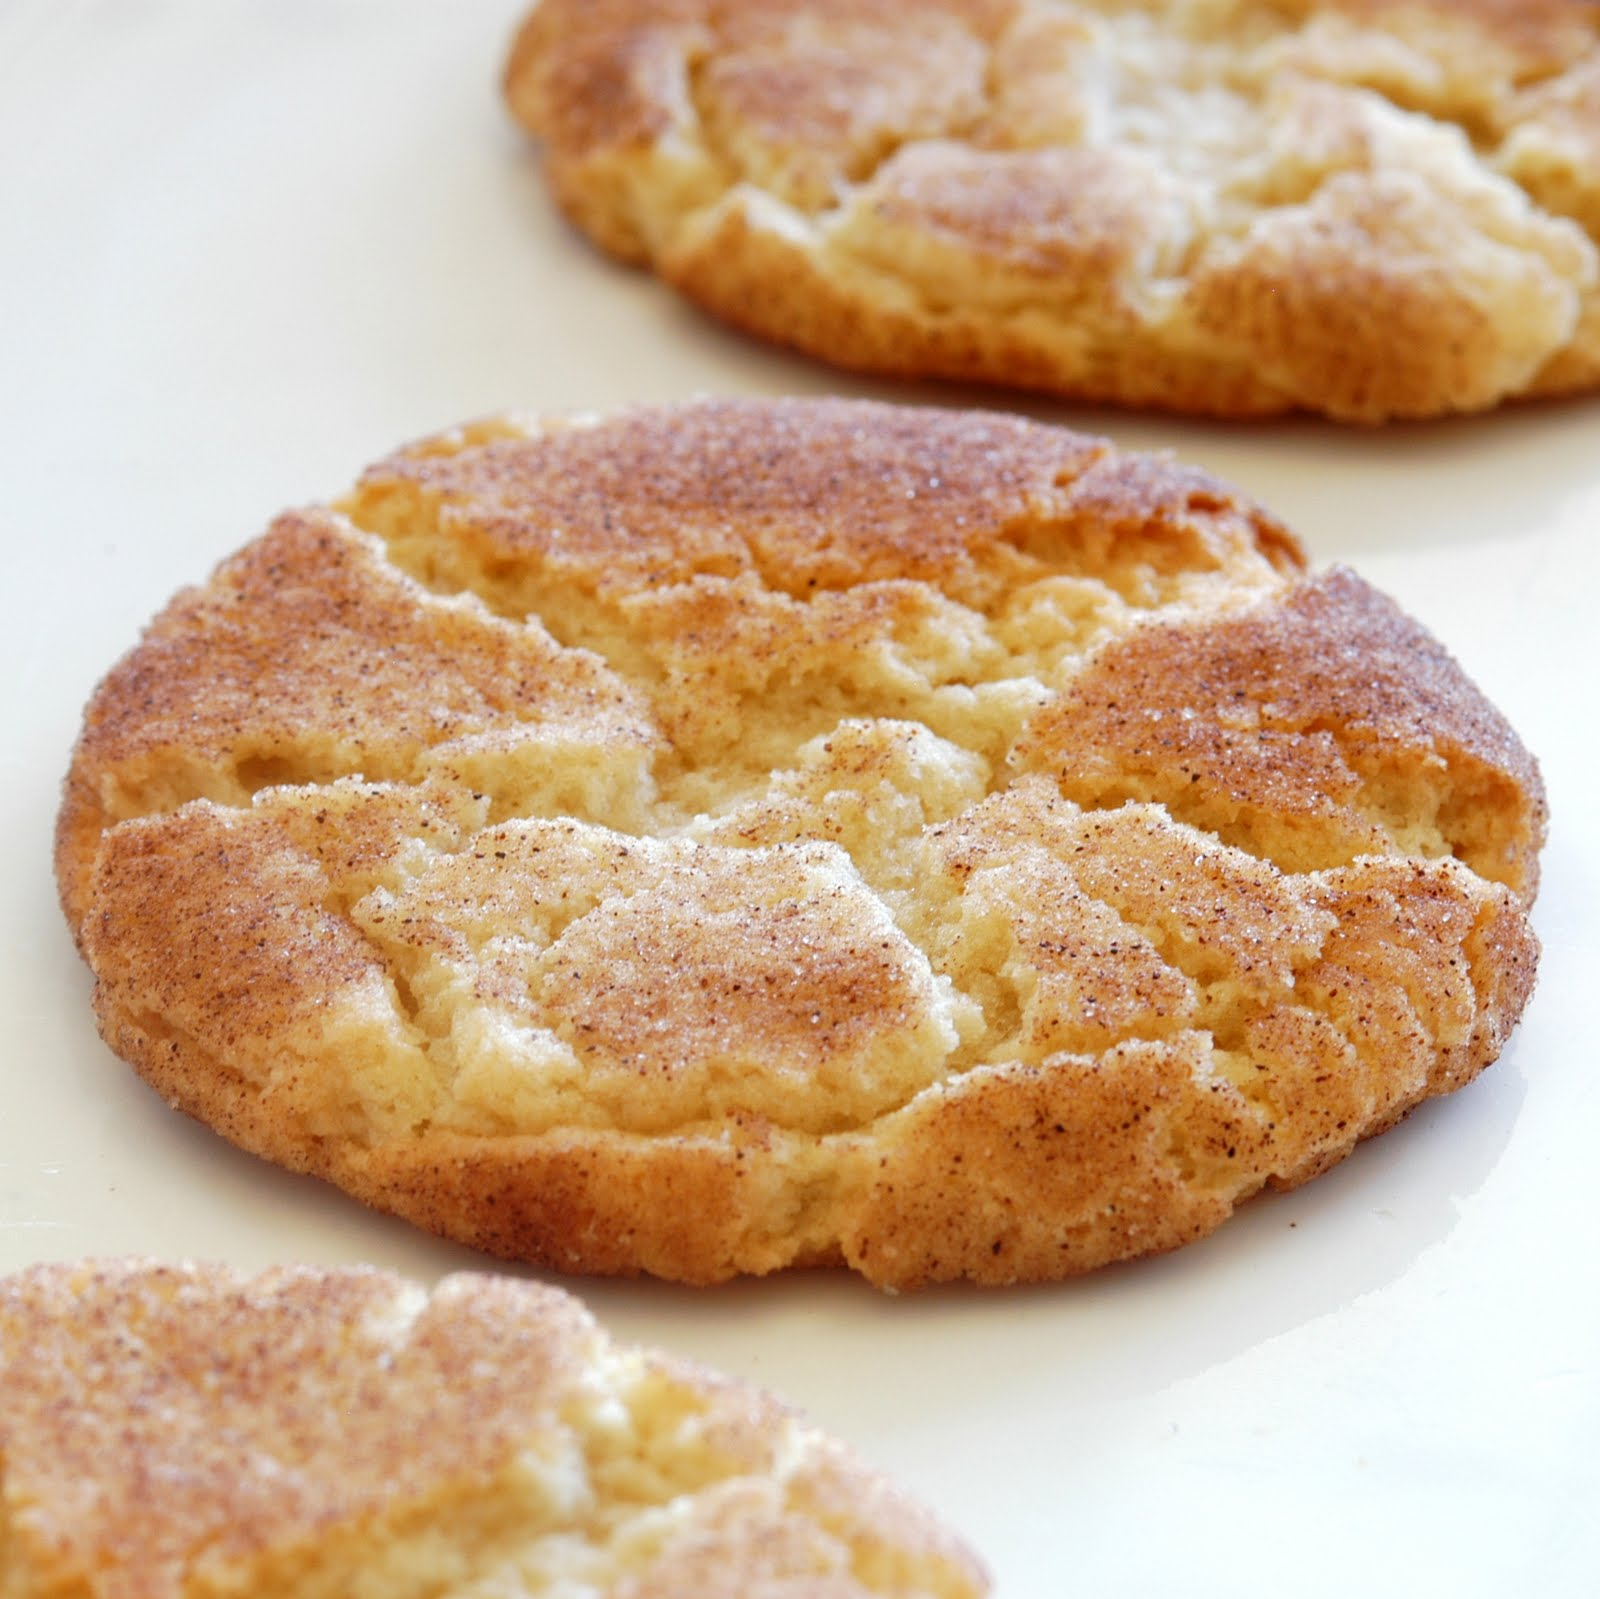 don't know who Mrs. Sigg is, but she sure has a killer Snickerdoodle ...